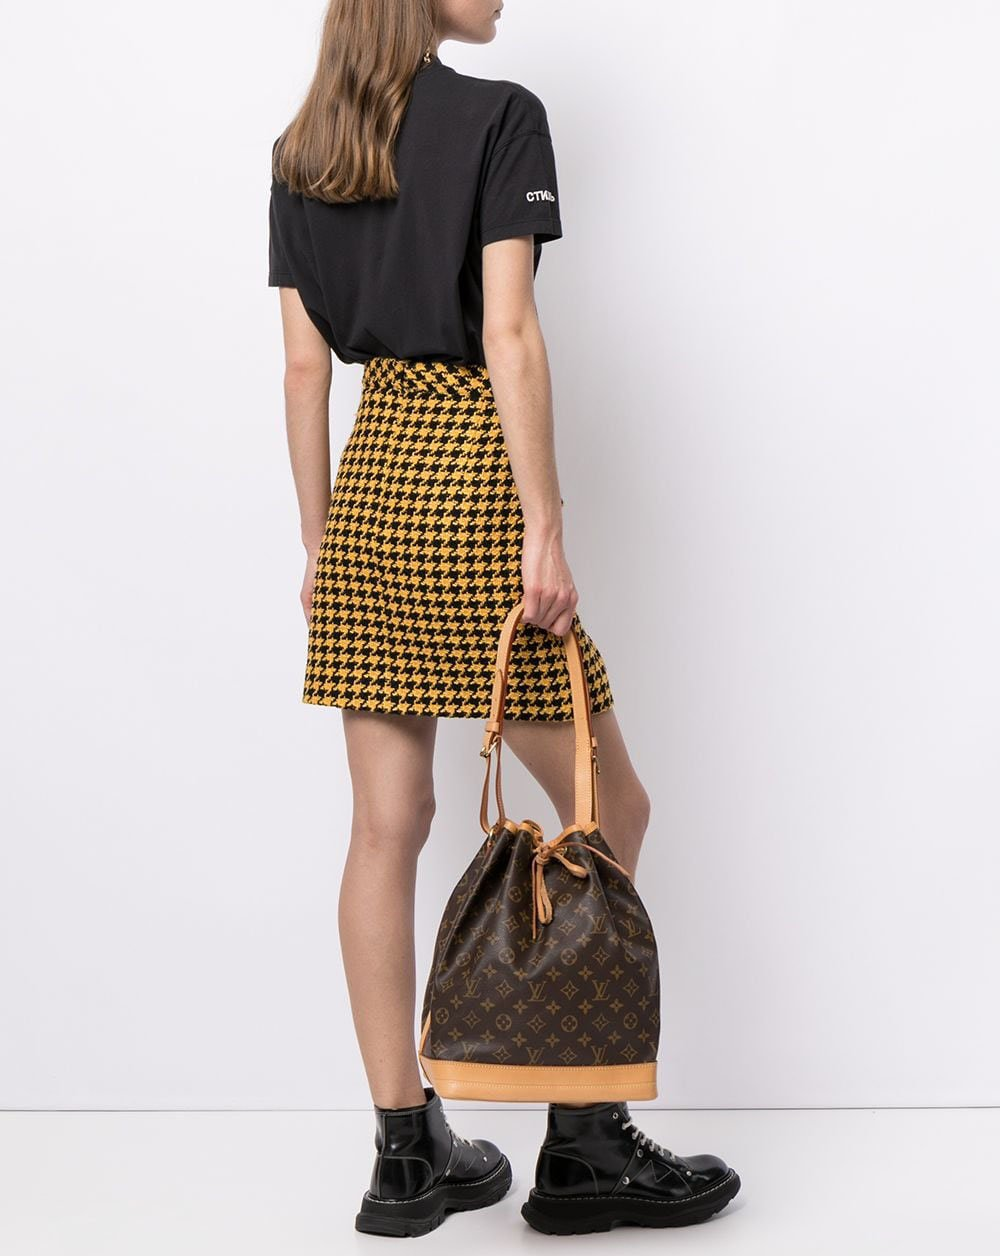 One of Louis Vuitton's oldest styles, the Noe is a classic bucket bag originally made to carry champagne bottles